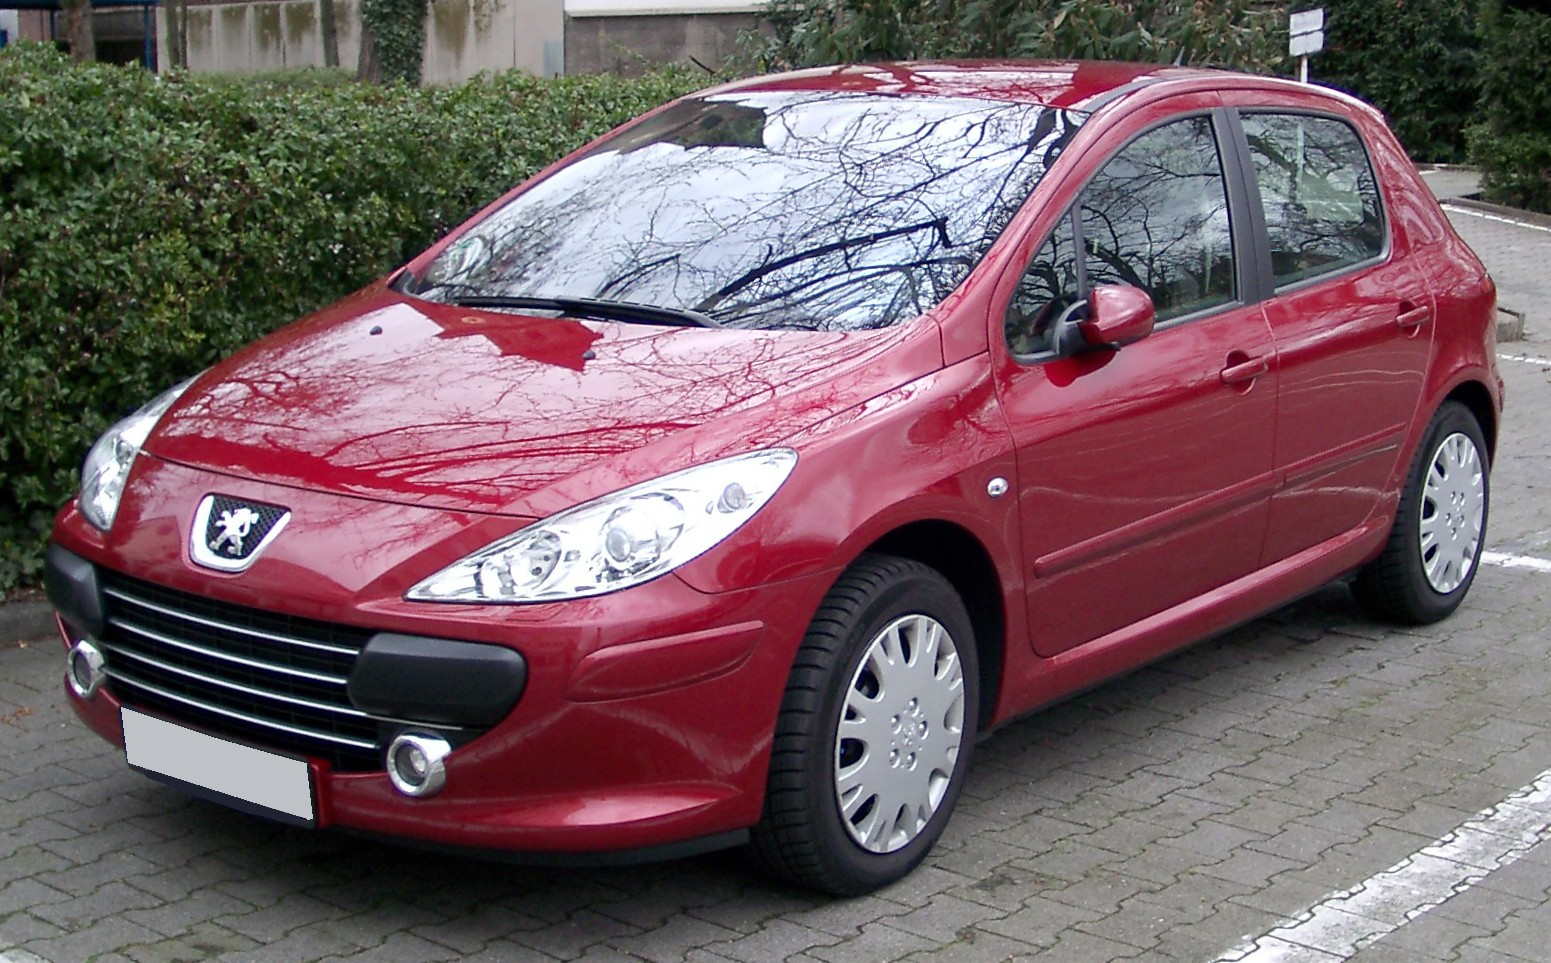 Peugeot 307 front Car Free Download Image Of